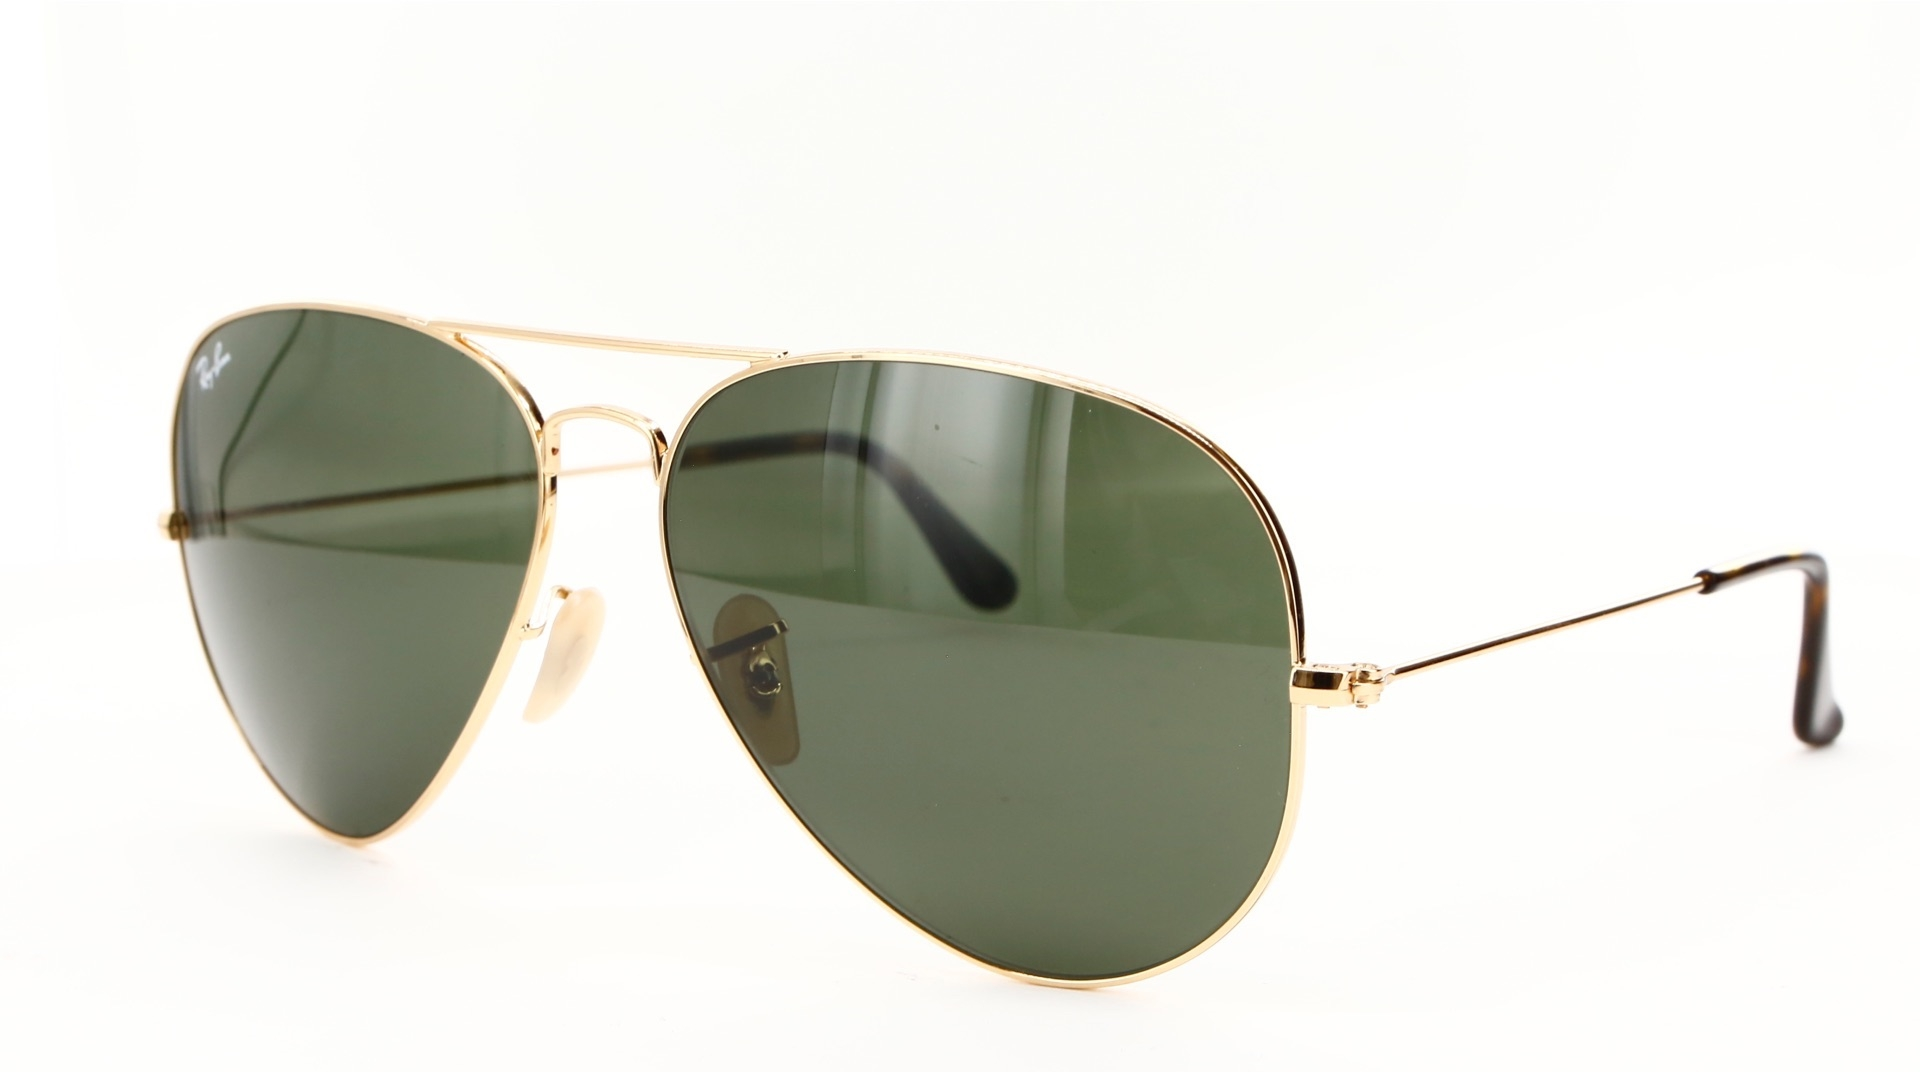 Ray-Ban - ref: 48267